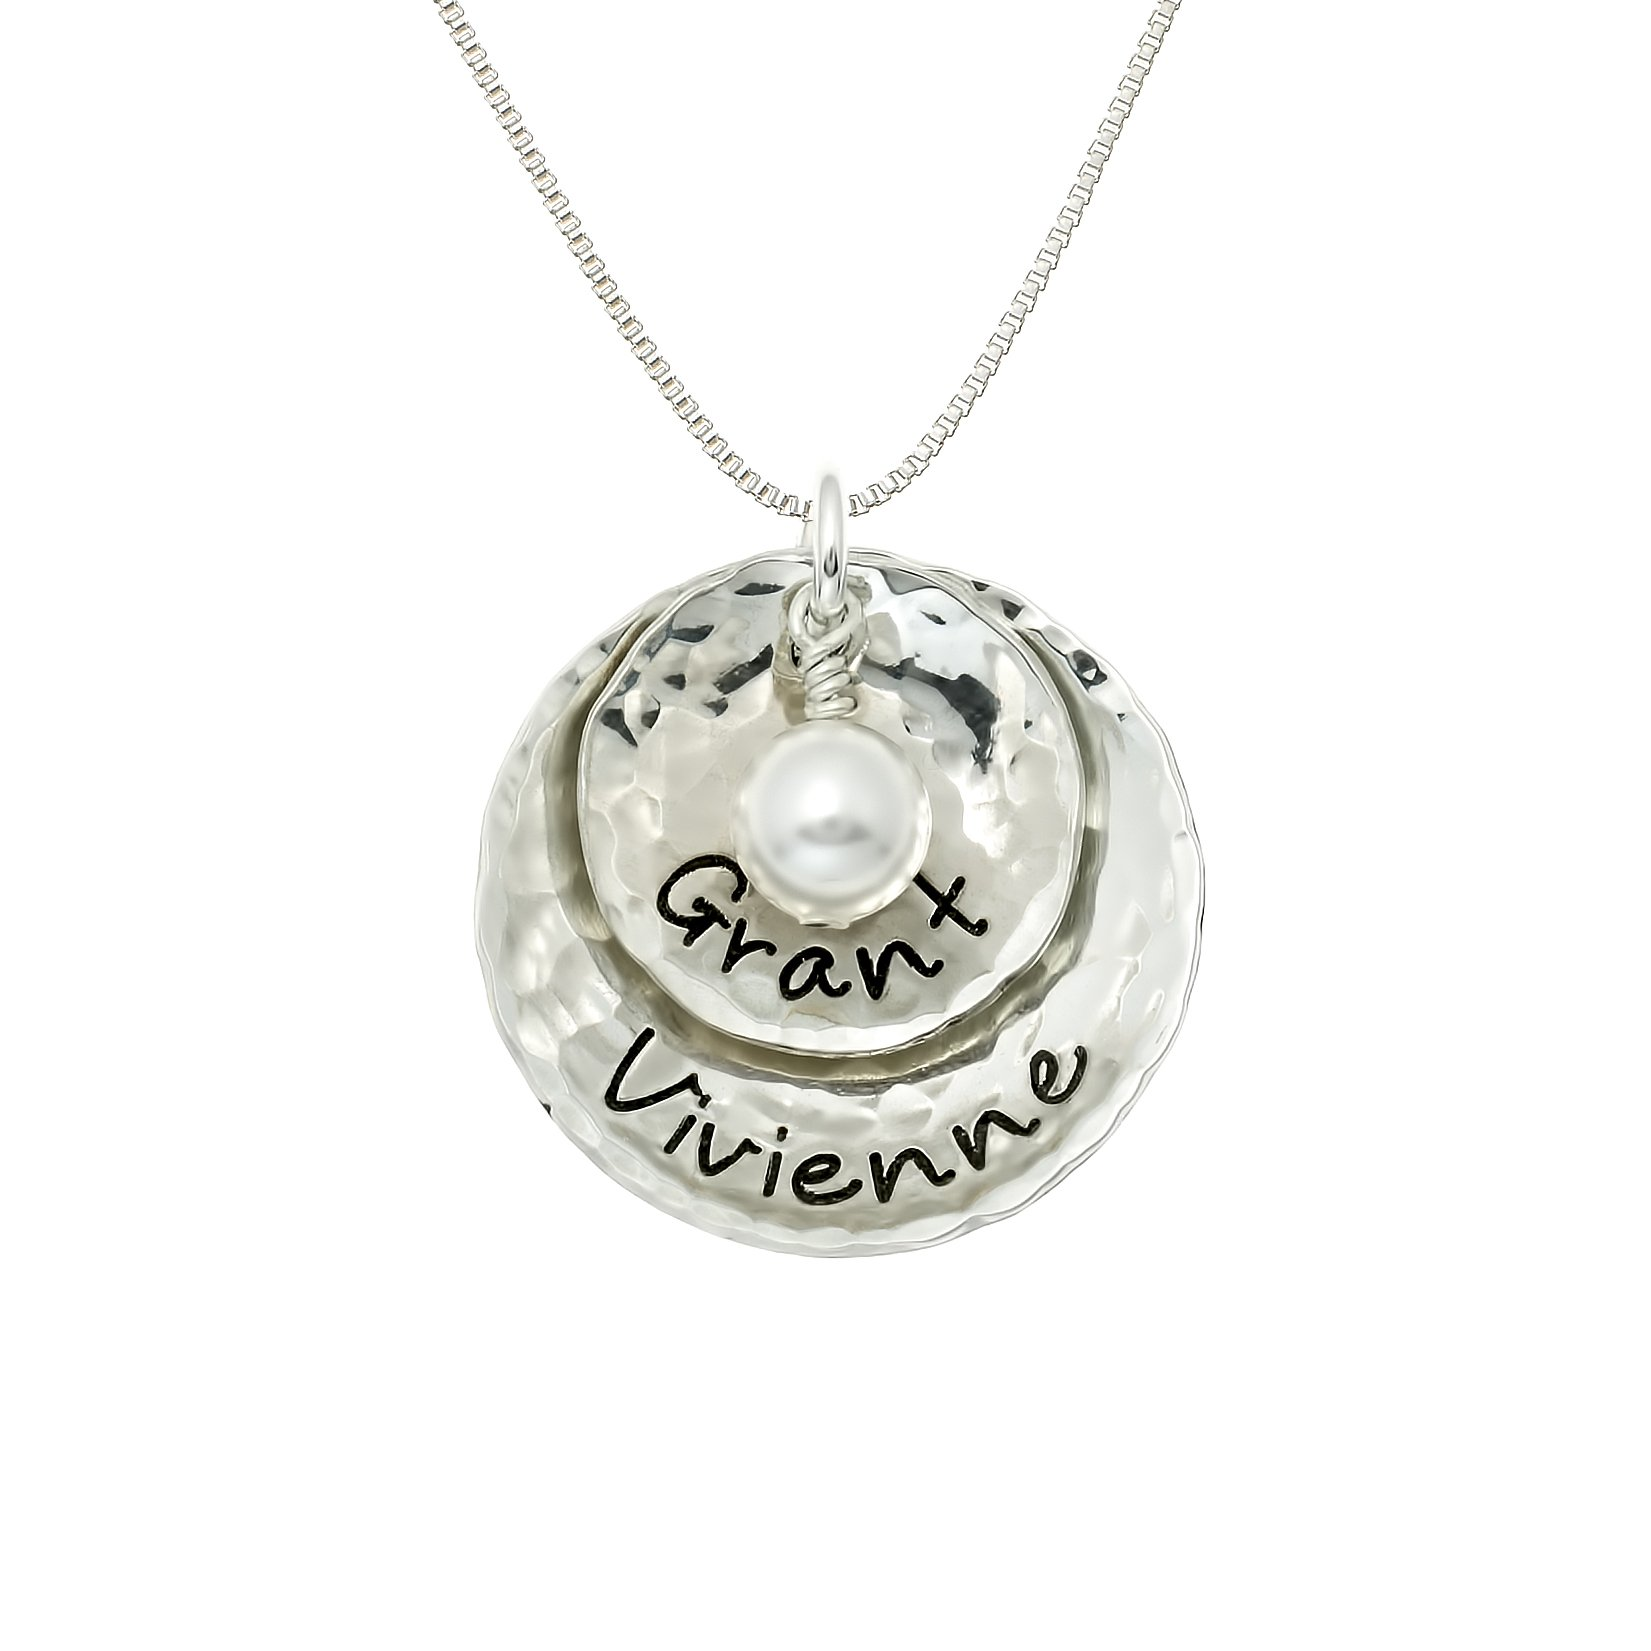 Dopio Personalized Sterling Silver Necklace with 2 Customizable Discs. Hand Finished and Accompanied by a Swarovski Pearl on a Sterling Silver Chain. Gifts for Her, Wife, Mother, Grandmother